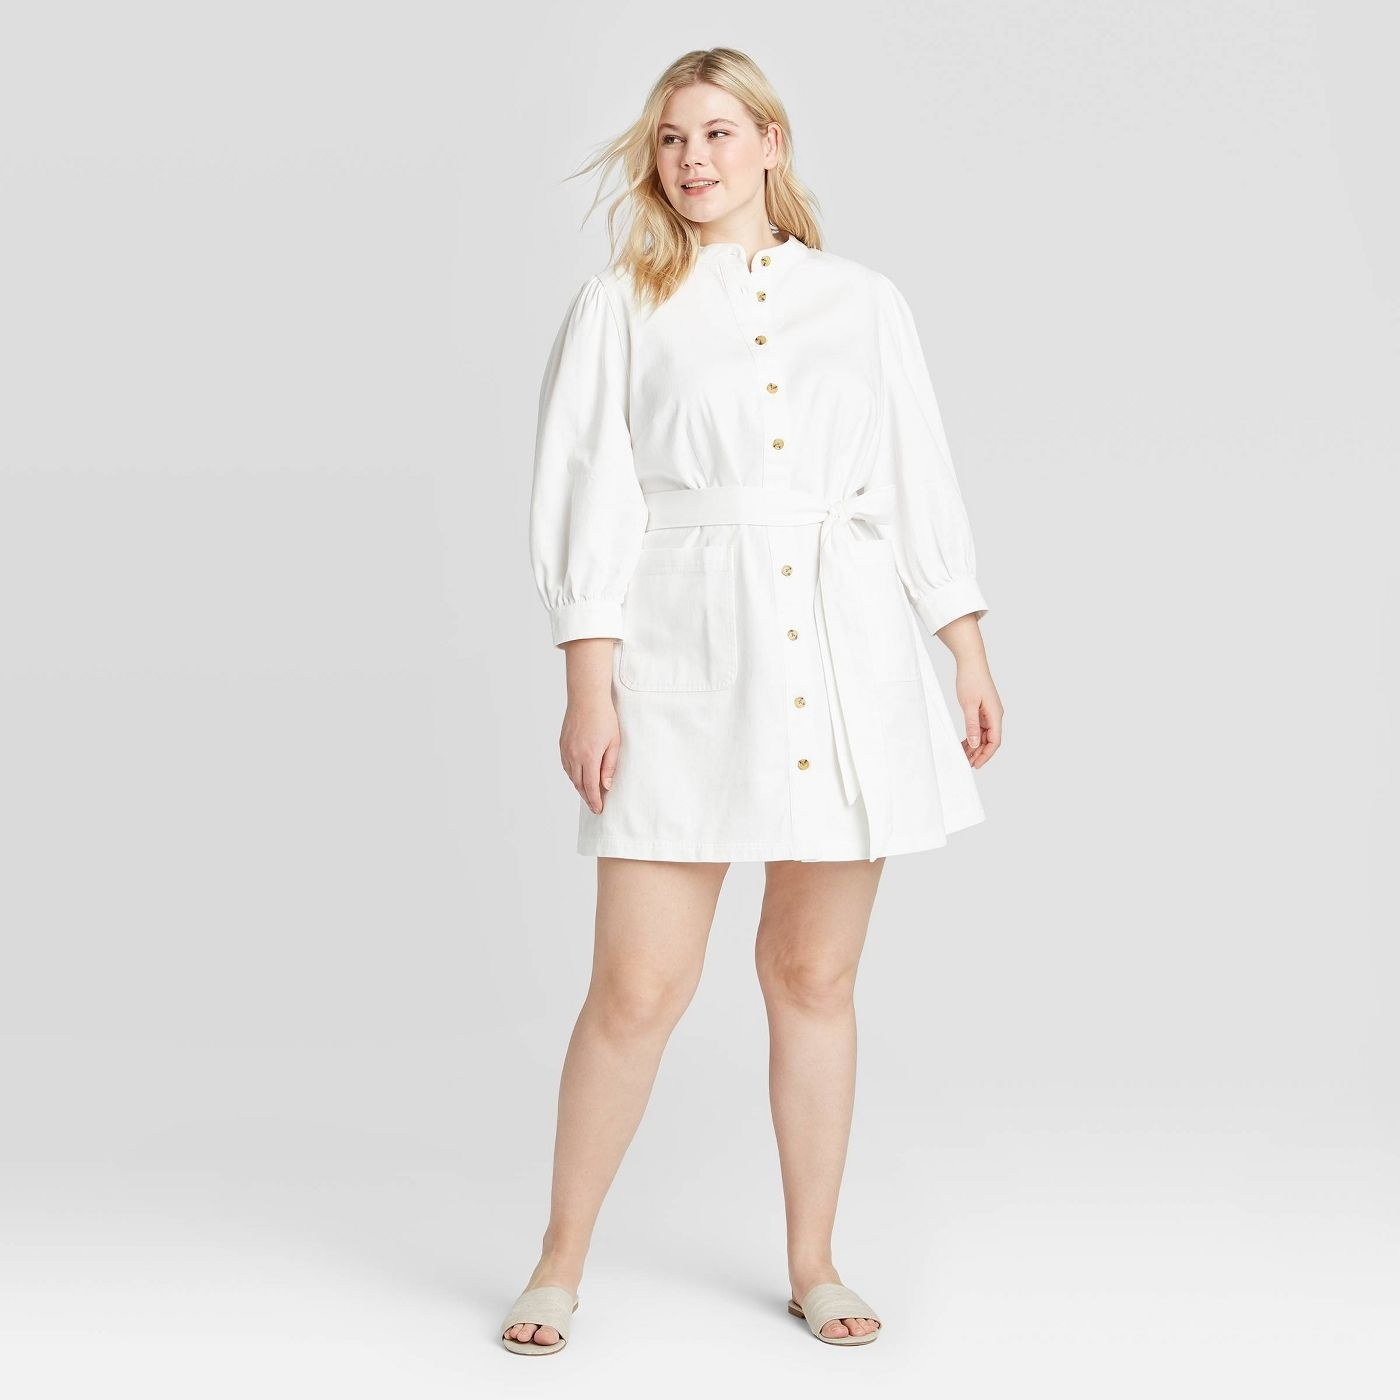 A white long sleeved button up dress that cinches at the waist